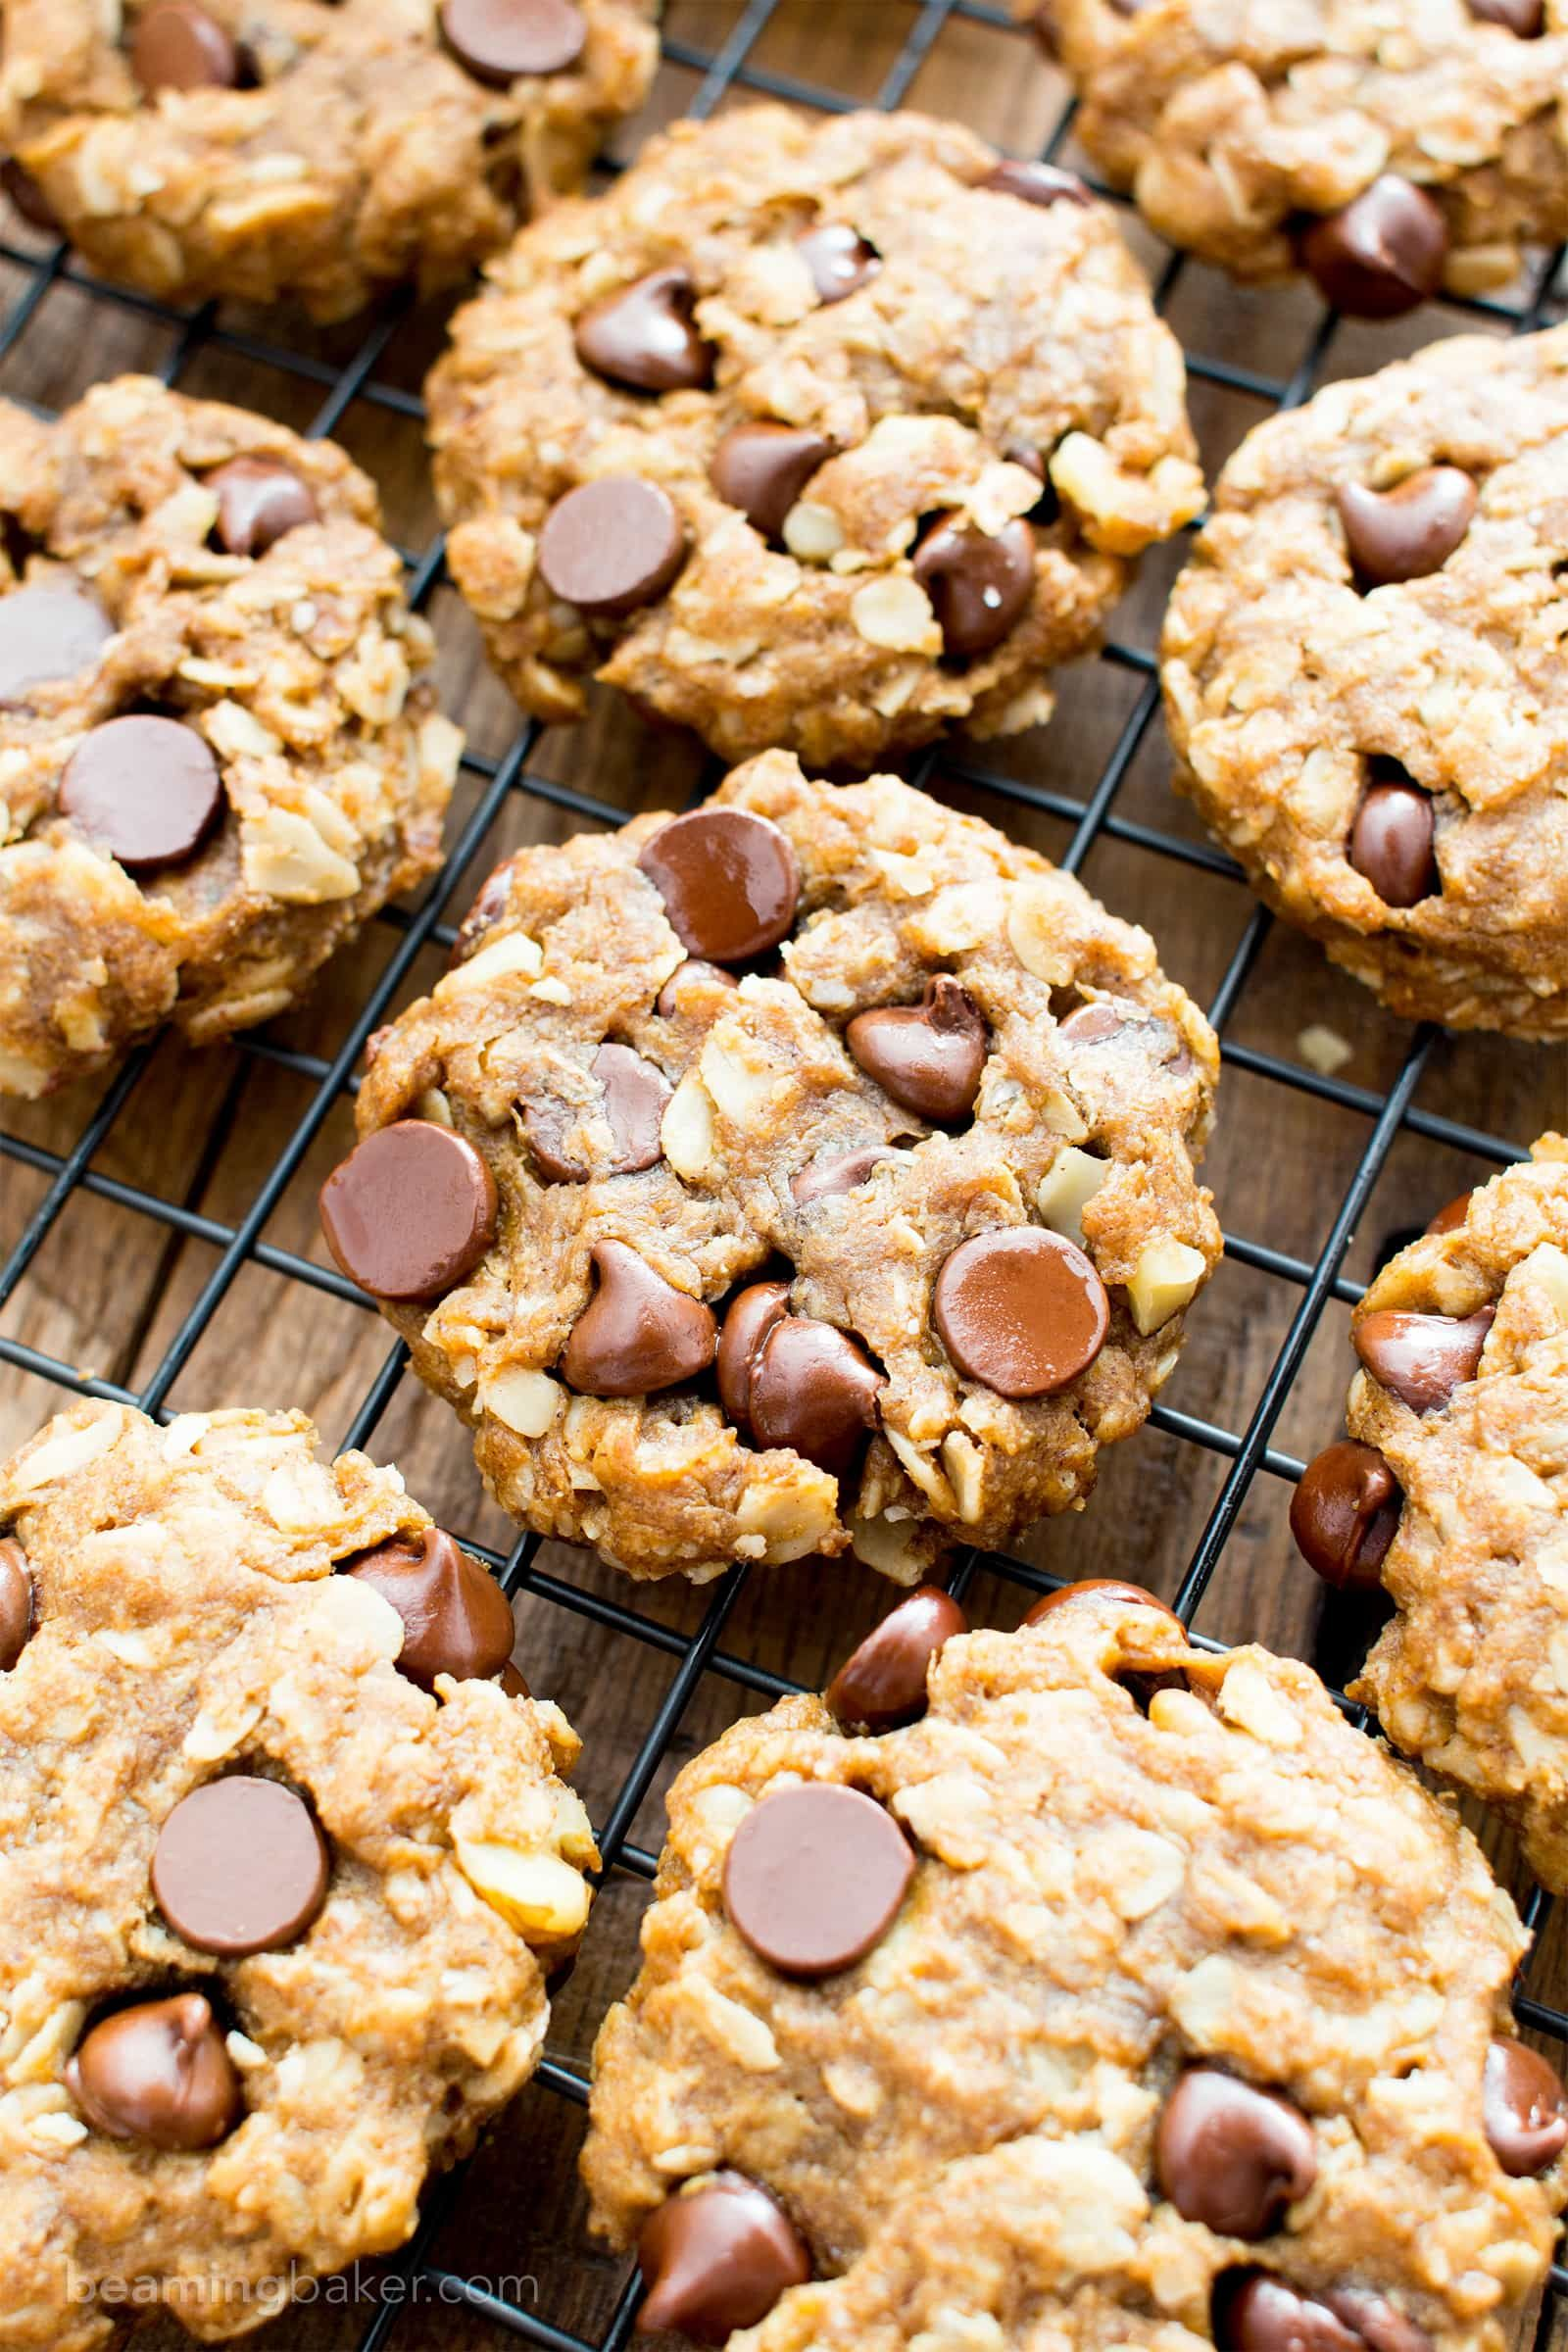 Easy gluten free peanut butter chocolate chip oatmeal